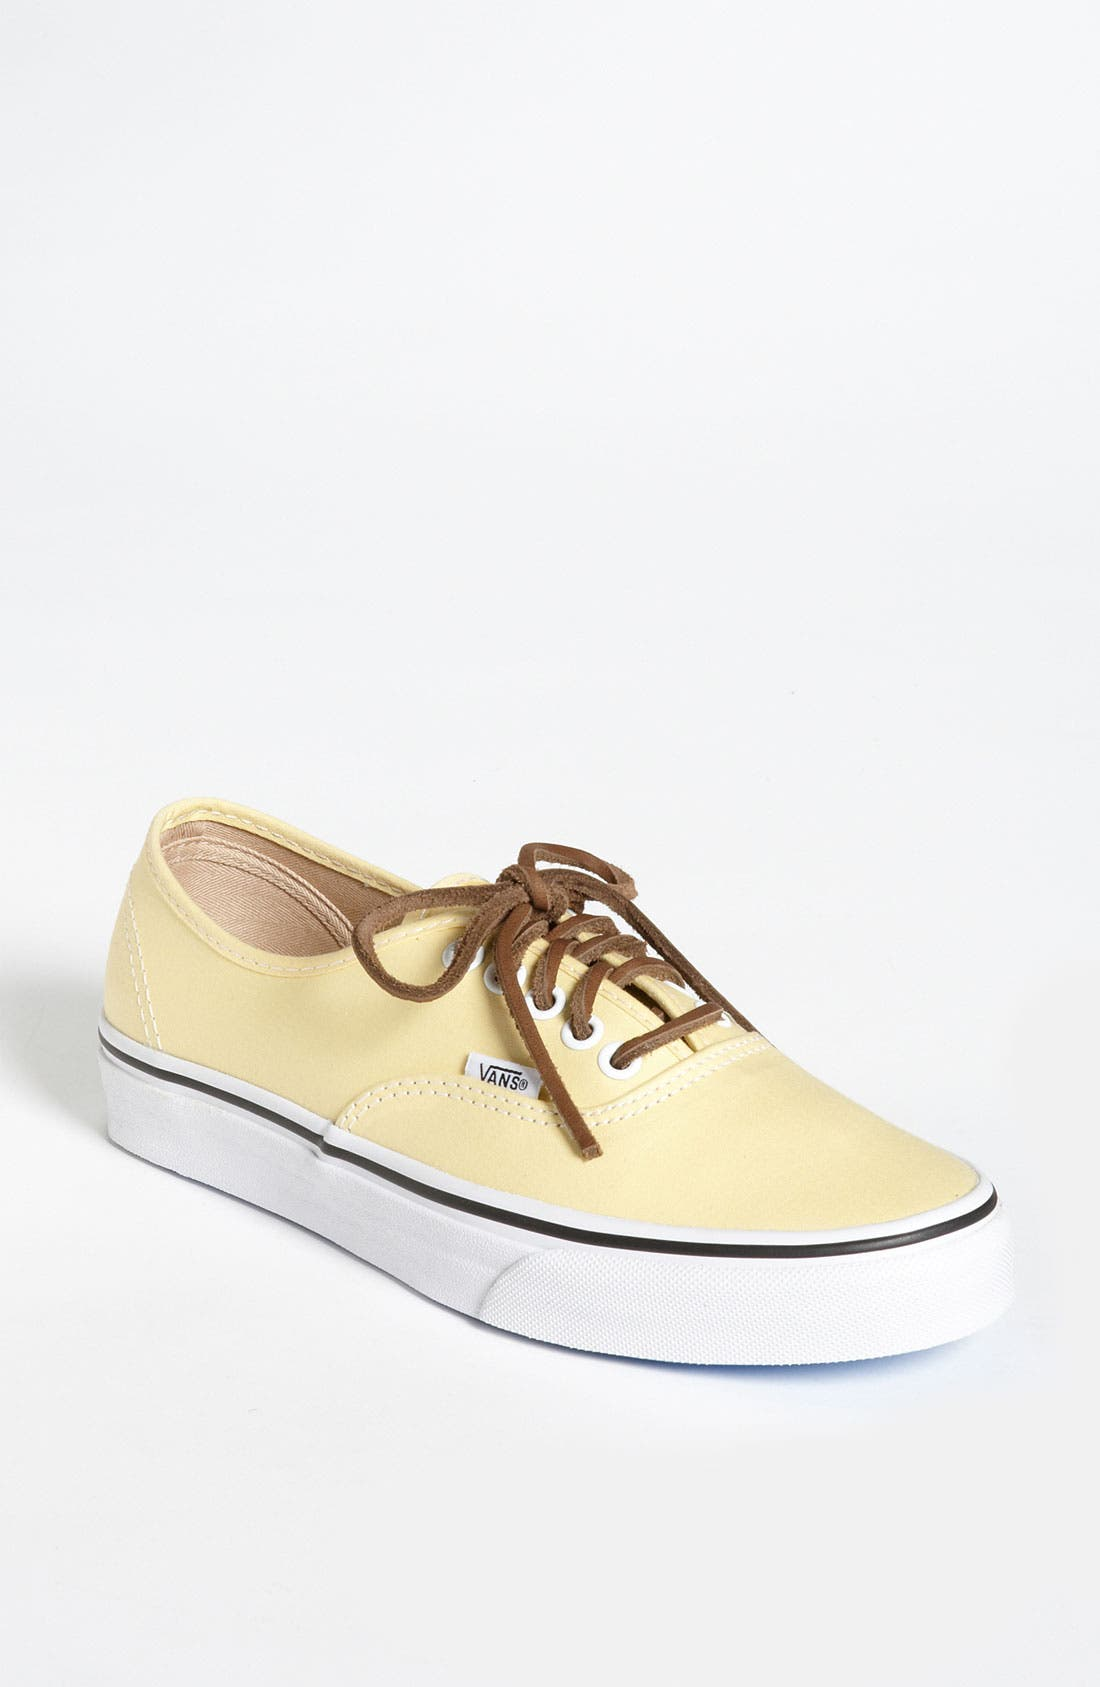 Main Image - Vans 'Authentic' Twill Sneaker (Women)